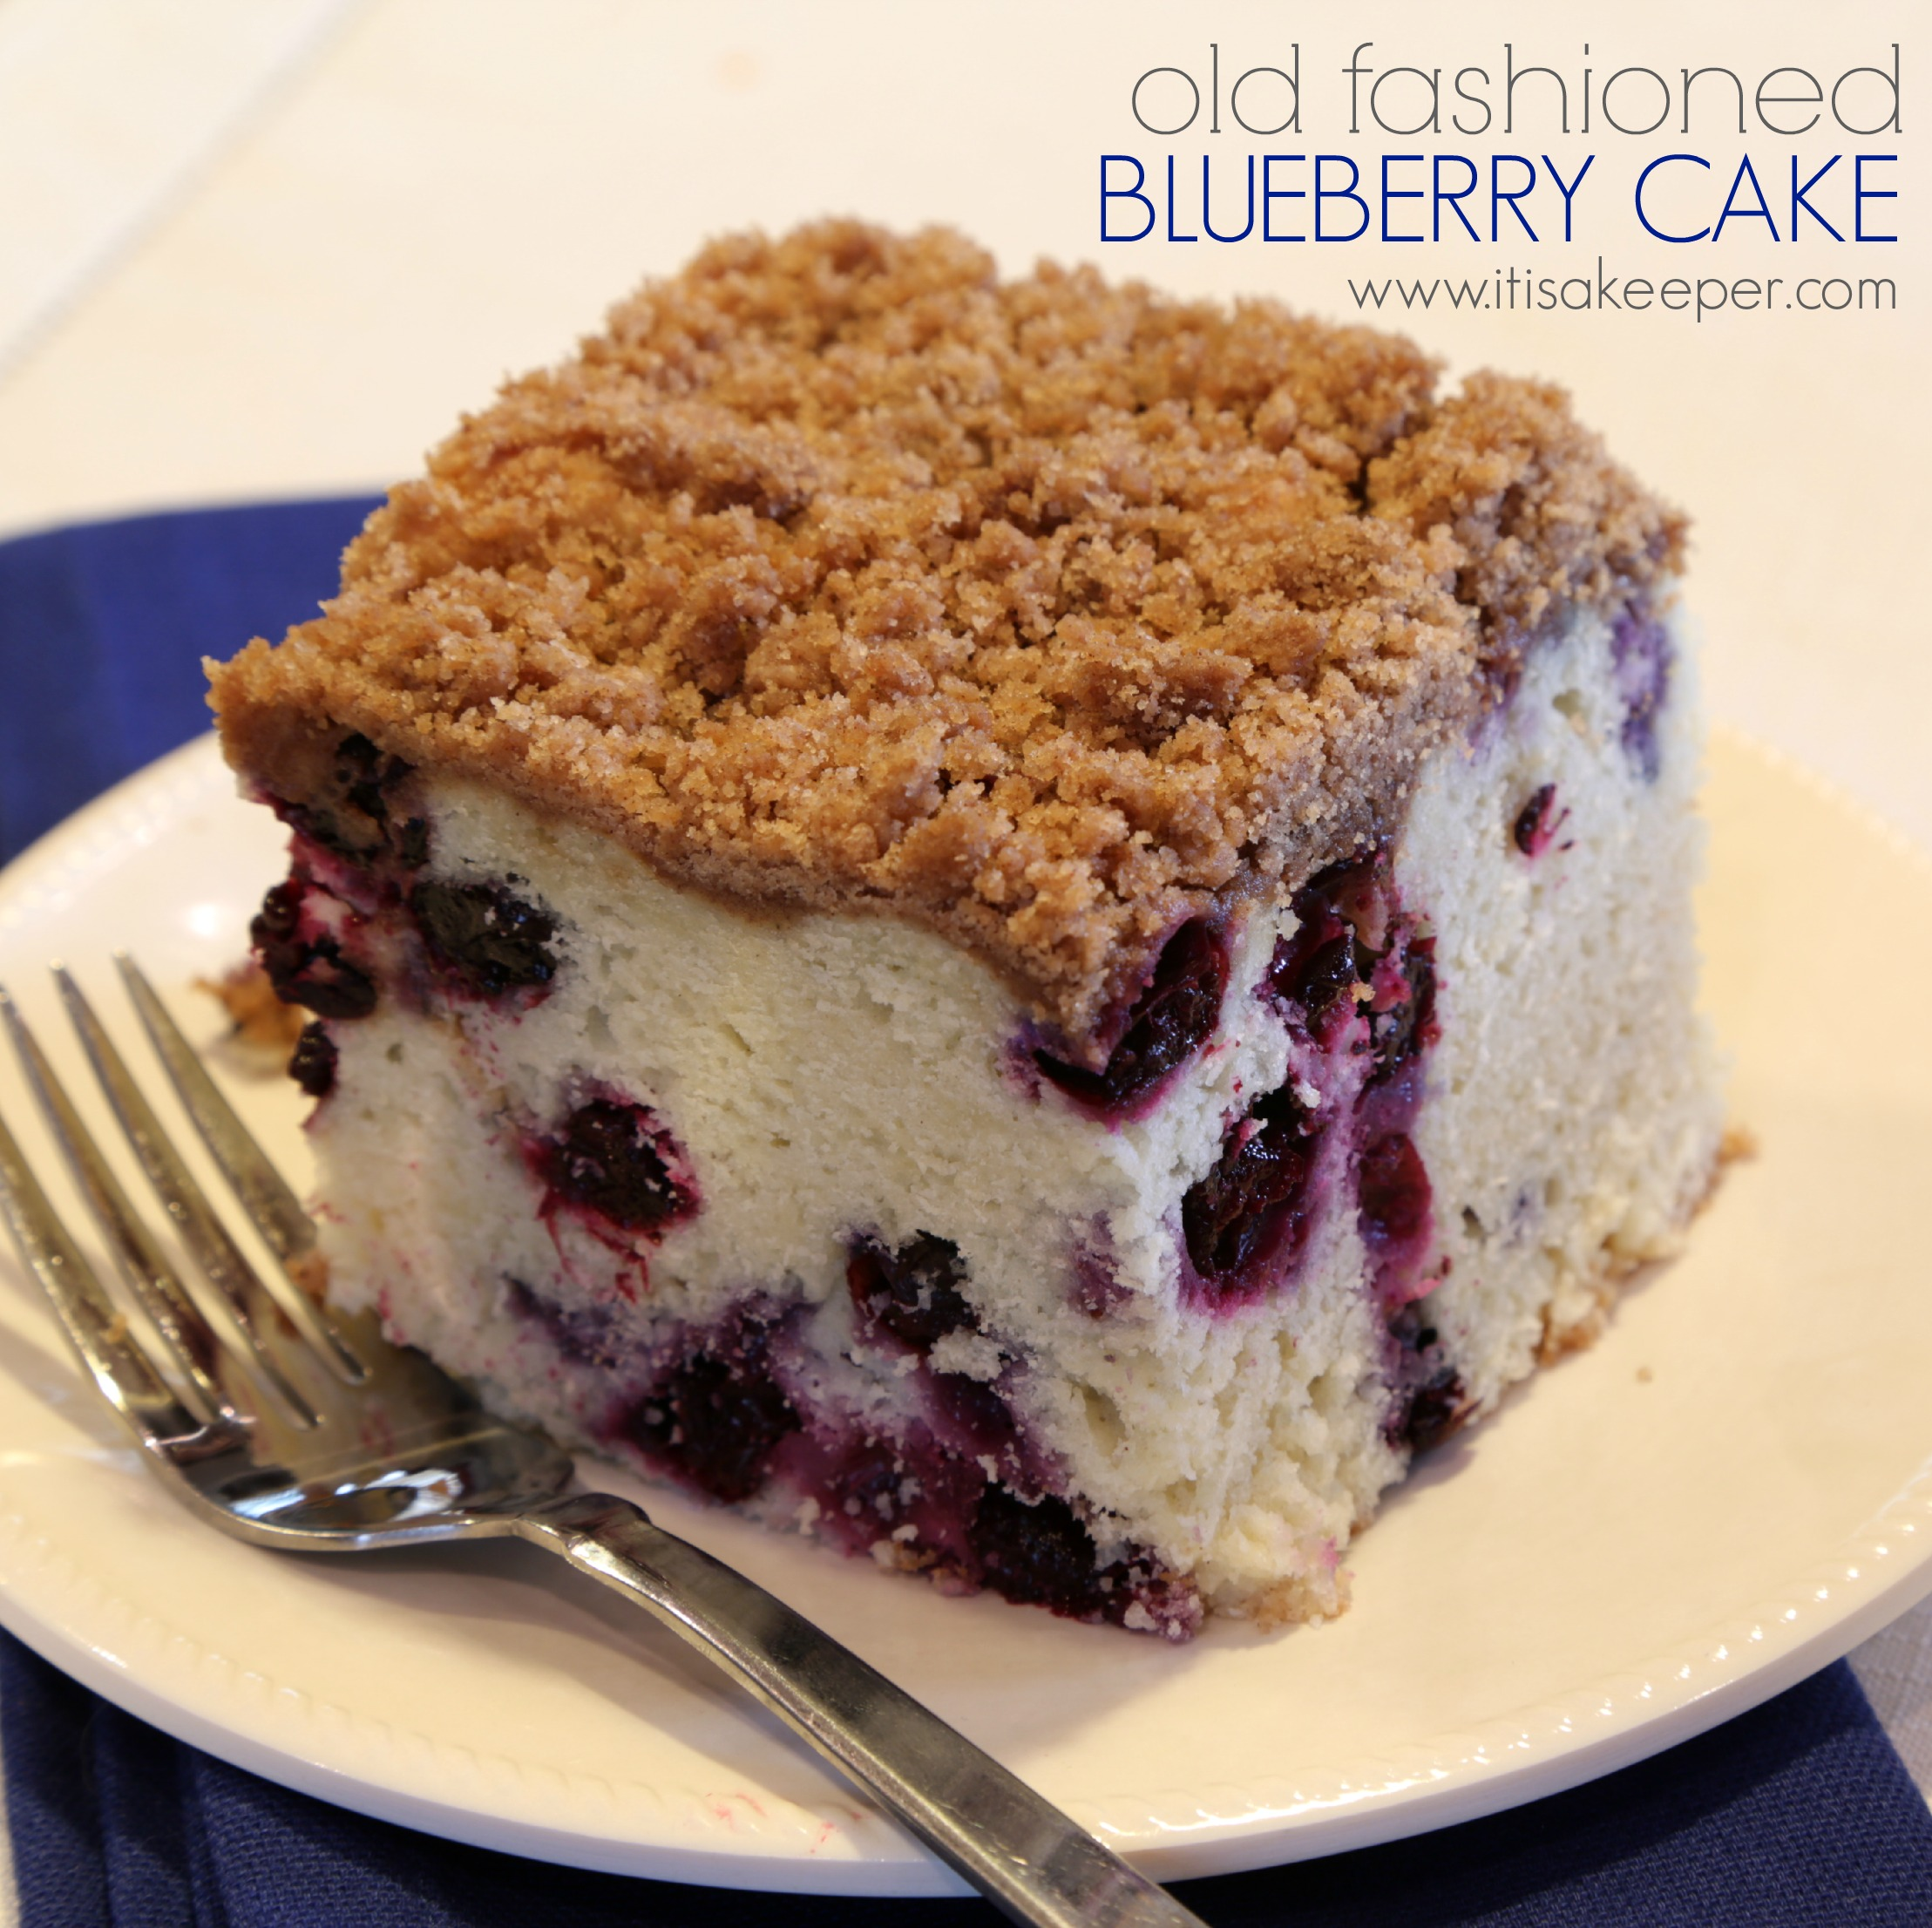 icebox cake blueberry tea cake blueberry tea cake blueberry tea cake ...